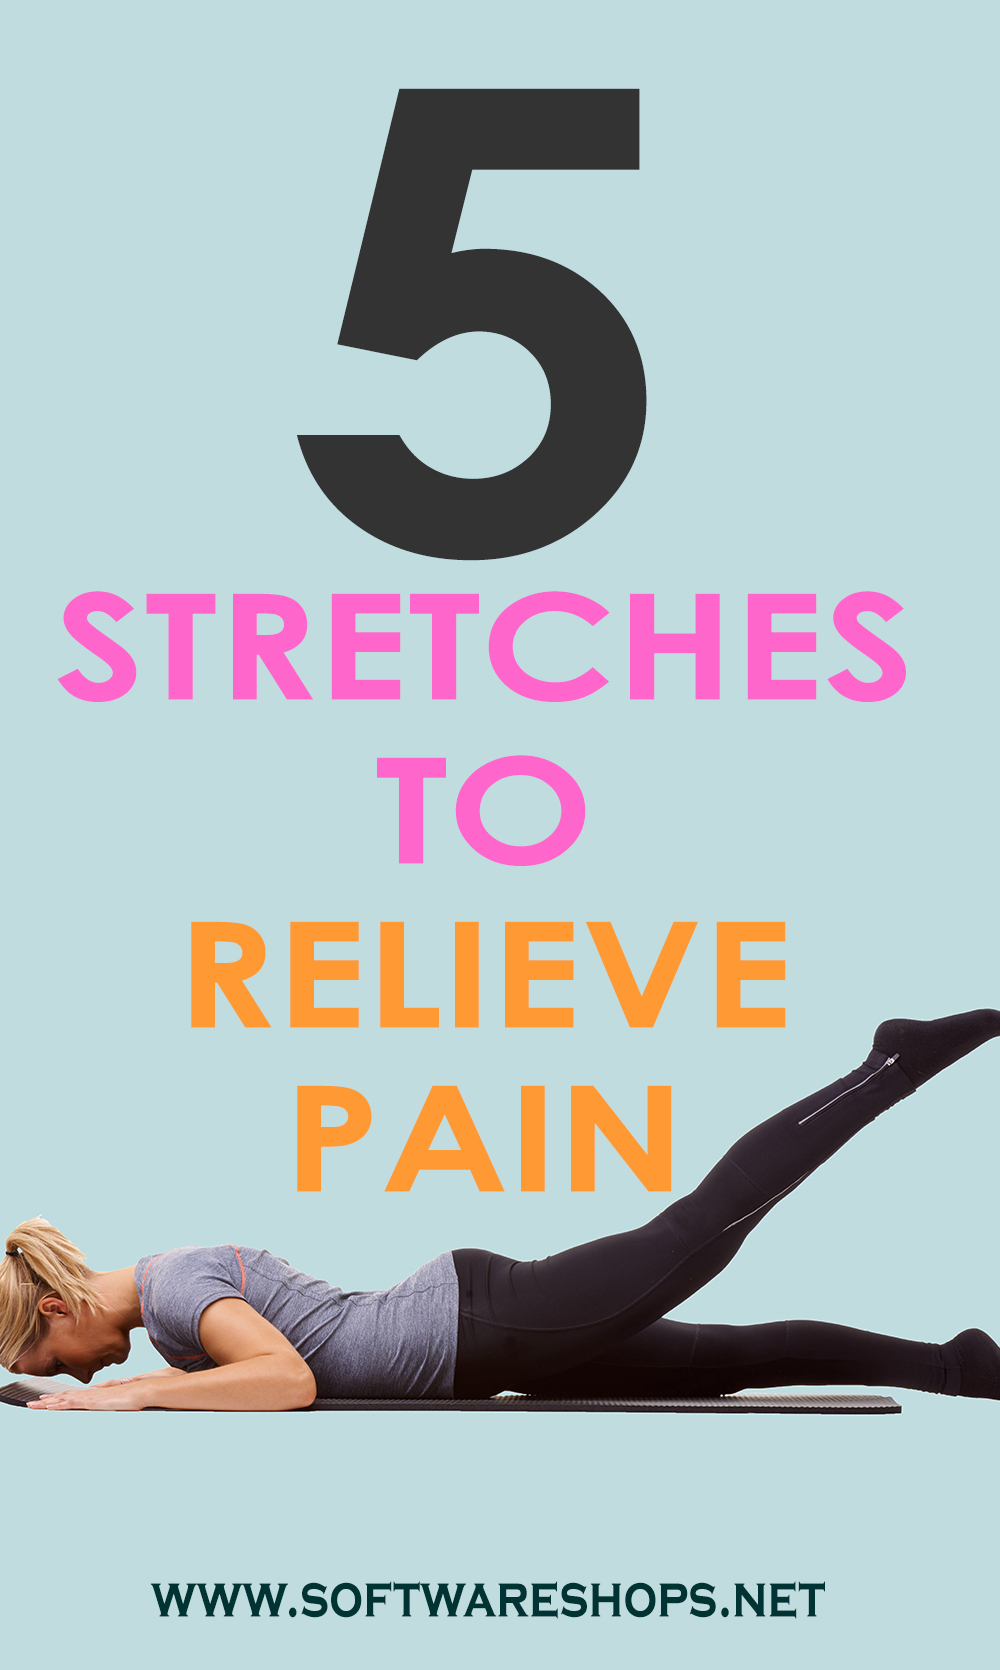 5 stretches to relieve pain